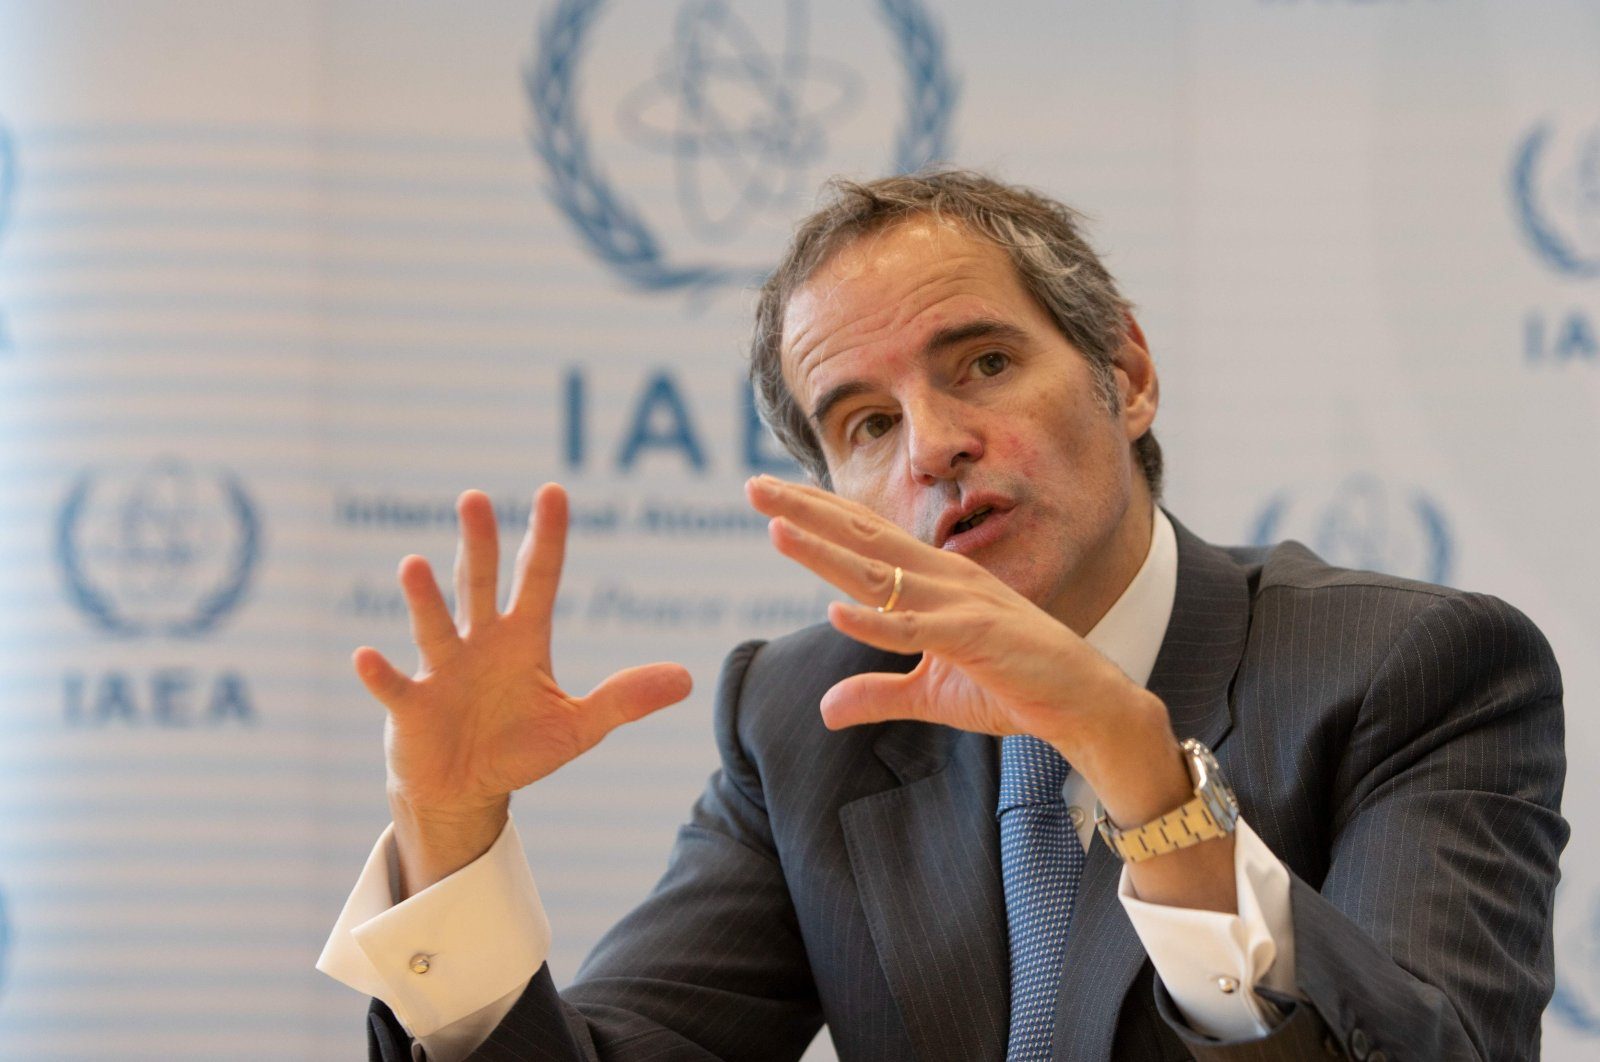 Director General of the International Atomic Energy Agency (IAEA) Rafael Mariano Grossi speaks during an AFP interview in Vienna on Nov. 30, 2020. (AFP)